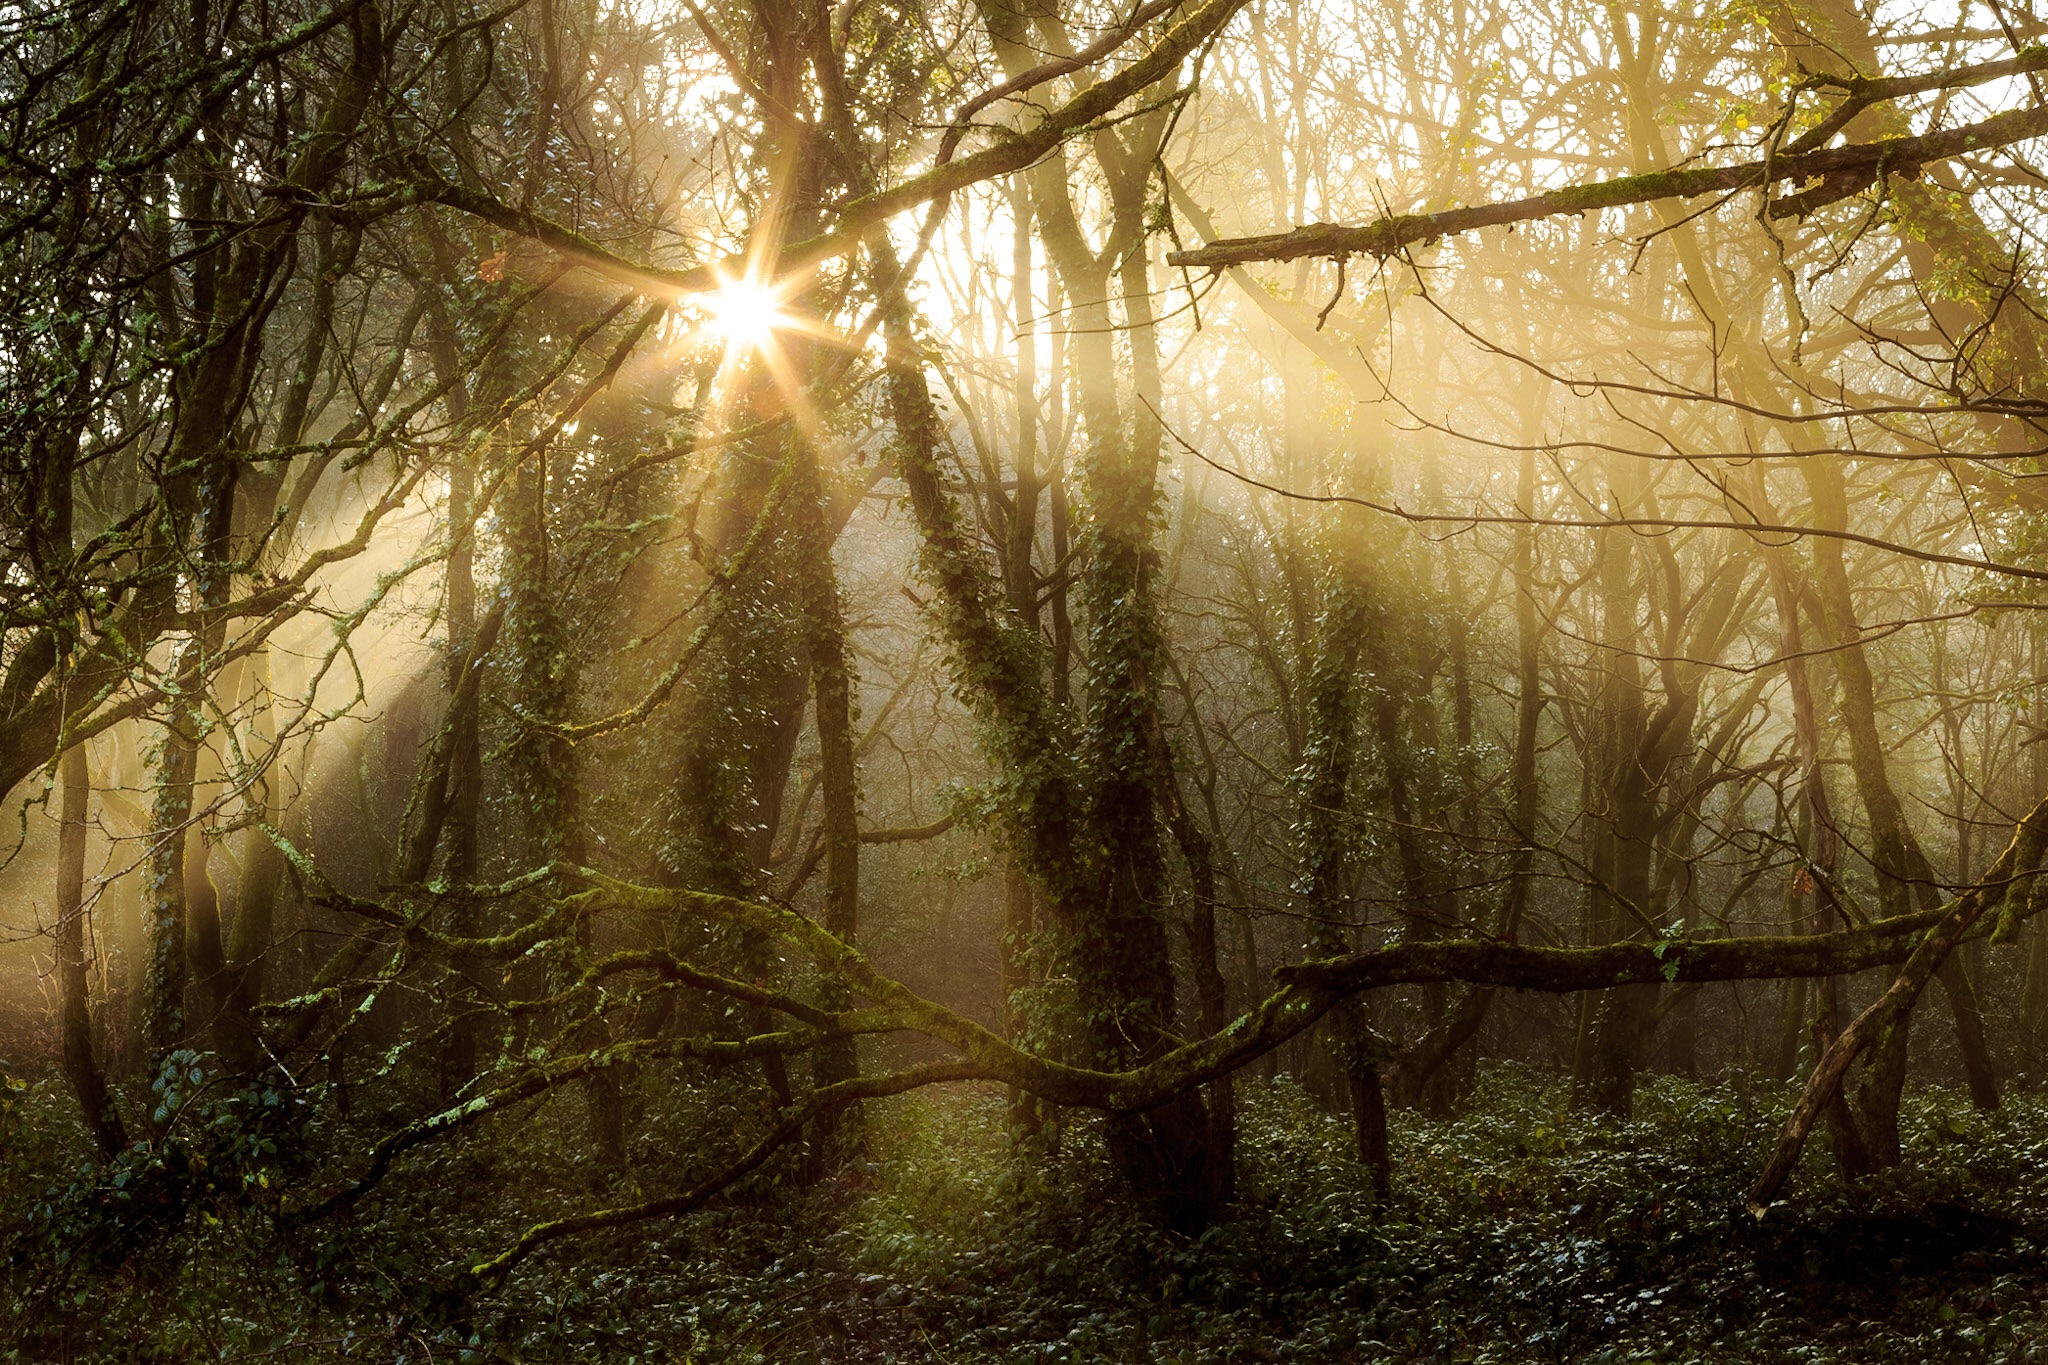 The bettter crop of this picture of the woods in Poole